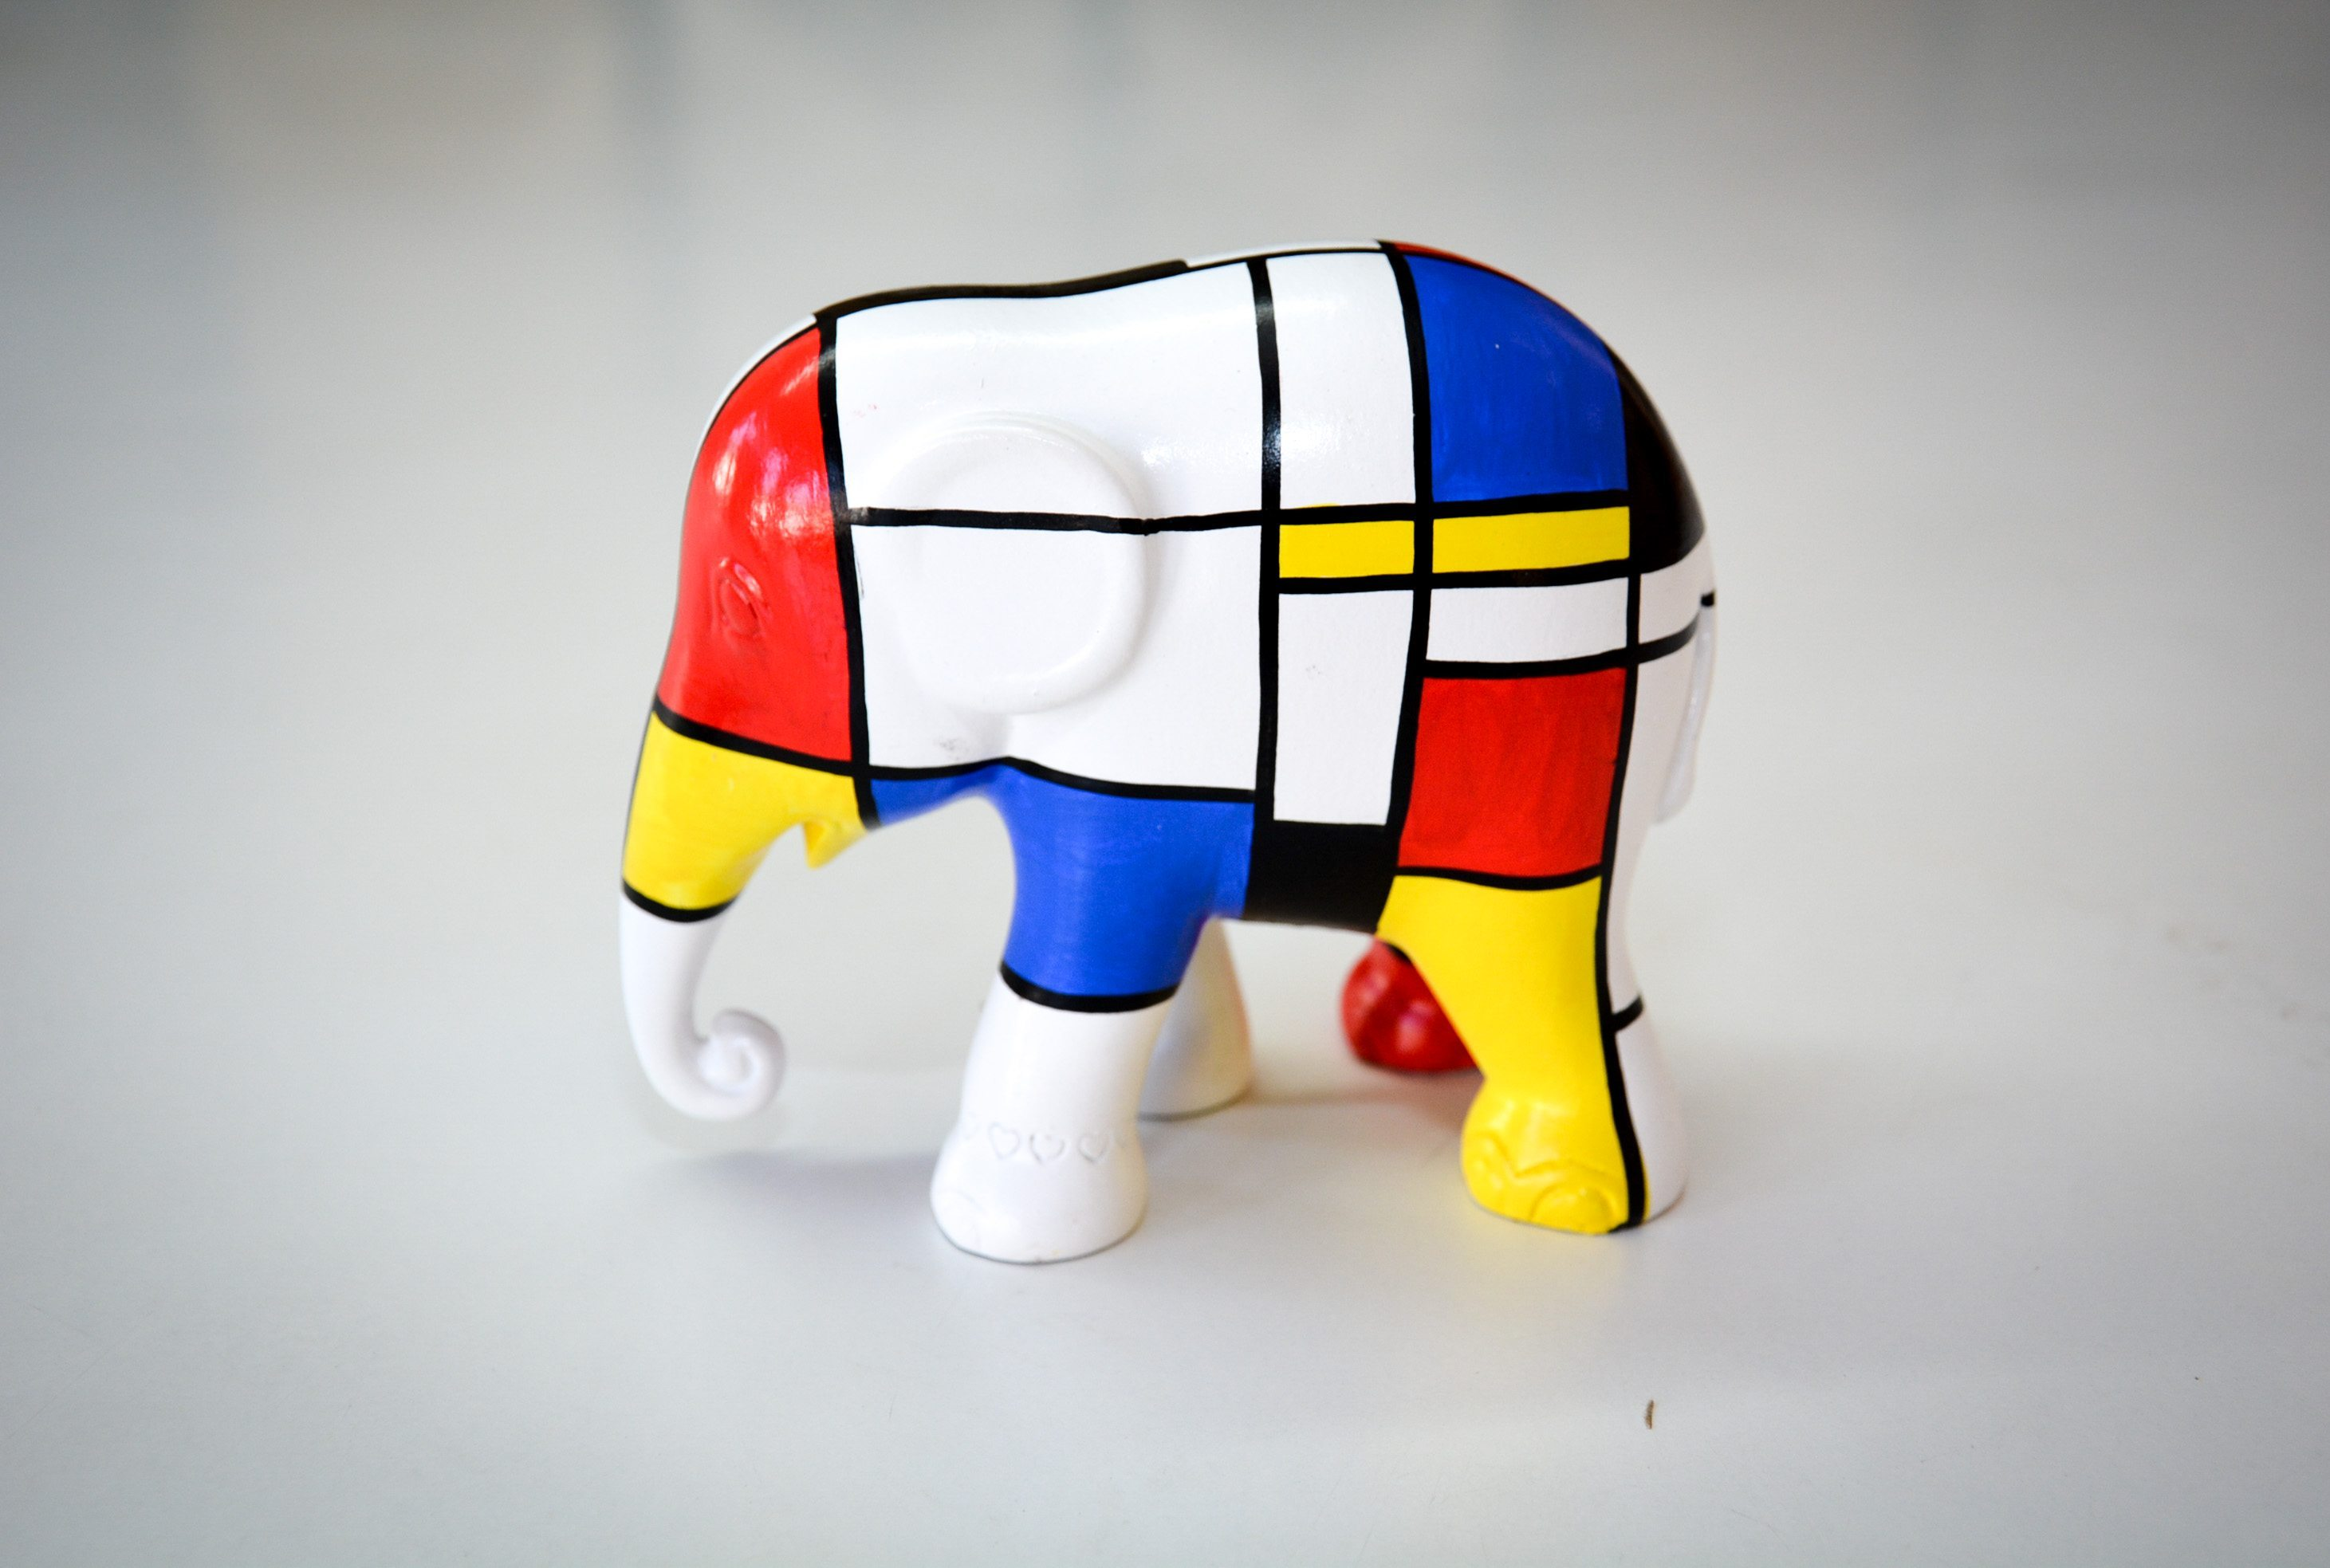 Elephant Parade. Birthday and occasion gifts available online at The Frame Gallery, based in Odiham.